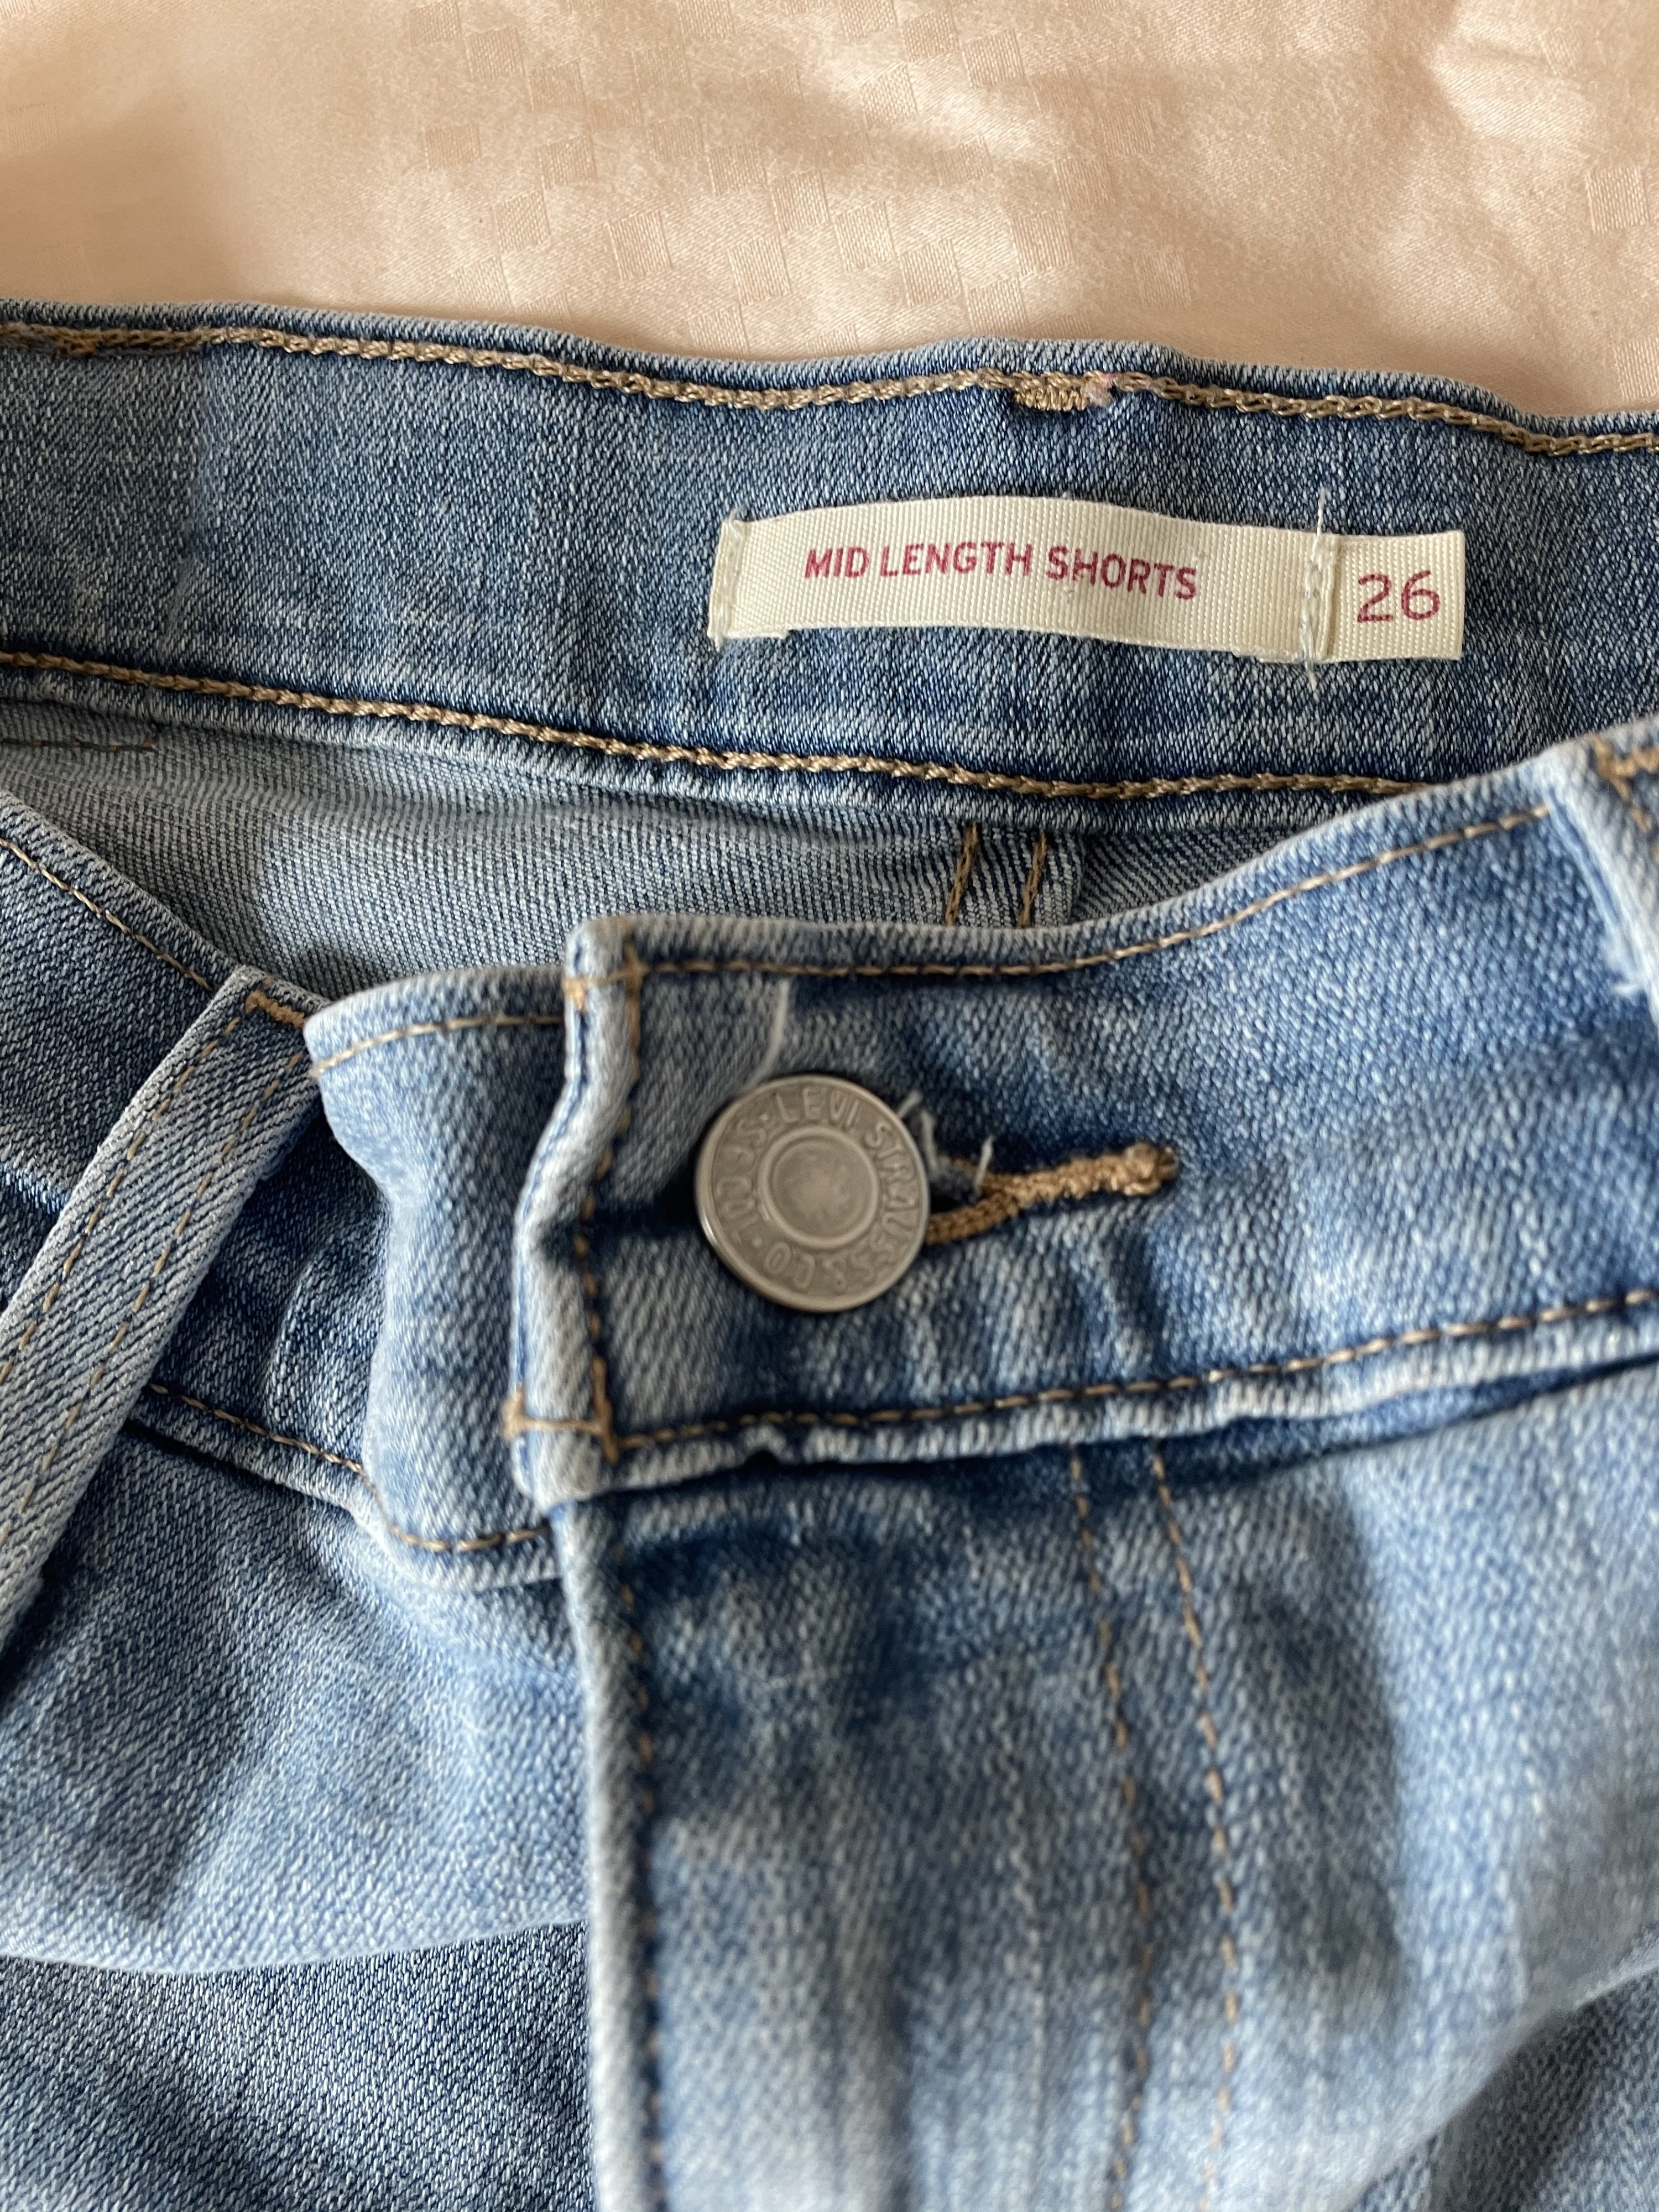 """writer's photo closeup of seams and tag on the back of shorts. it reads """"Mid Length Shorts 26"""""""